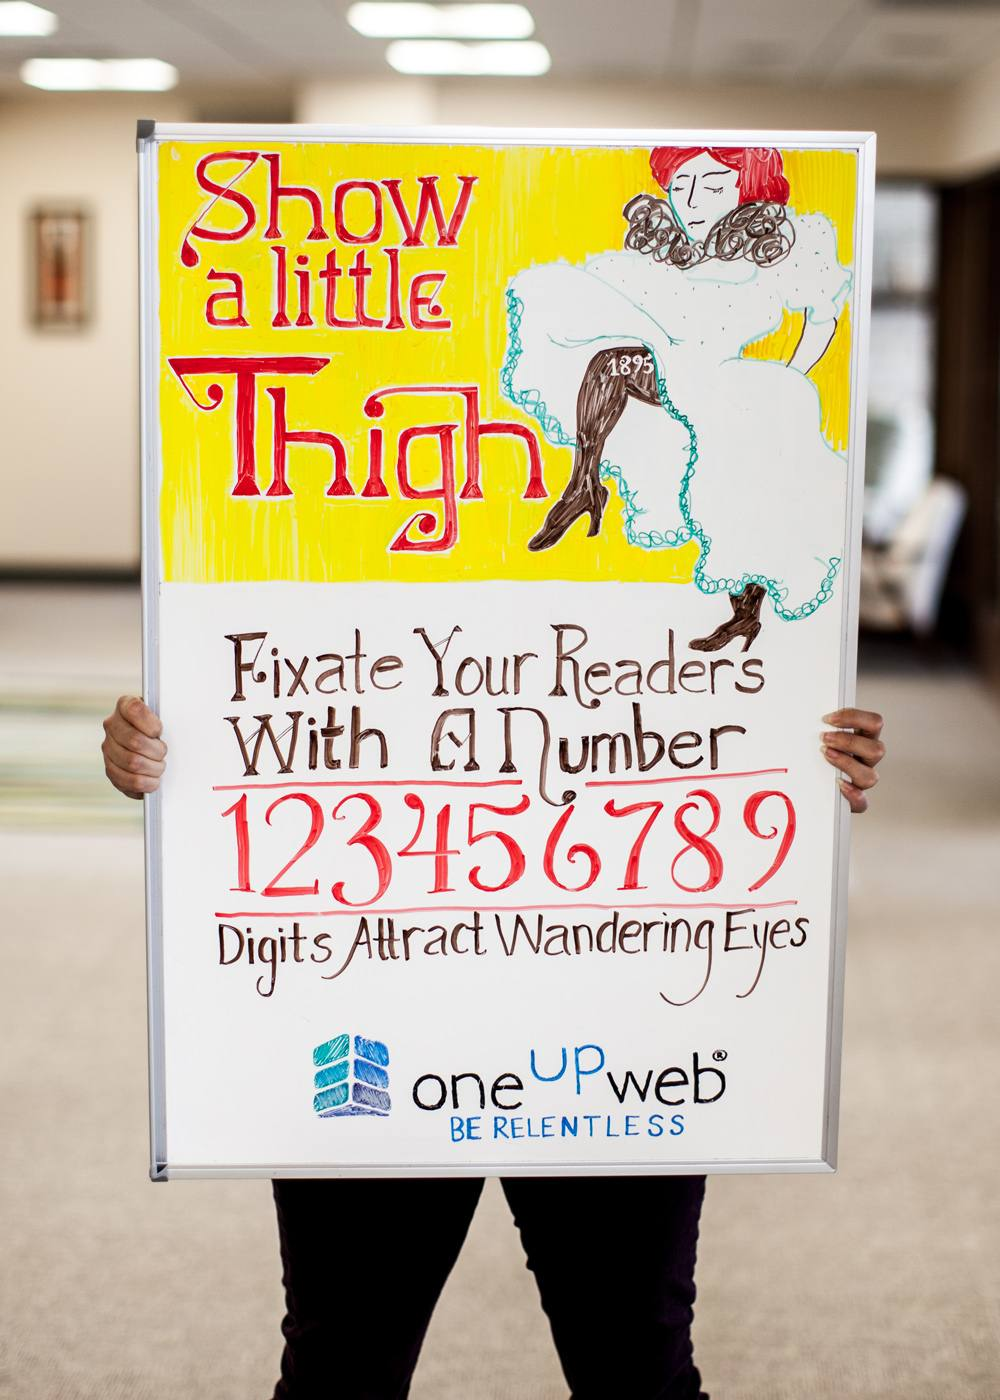 Marketing Tip of the Week: Digits Attract Wandering Eyes